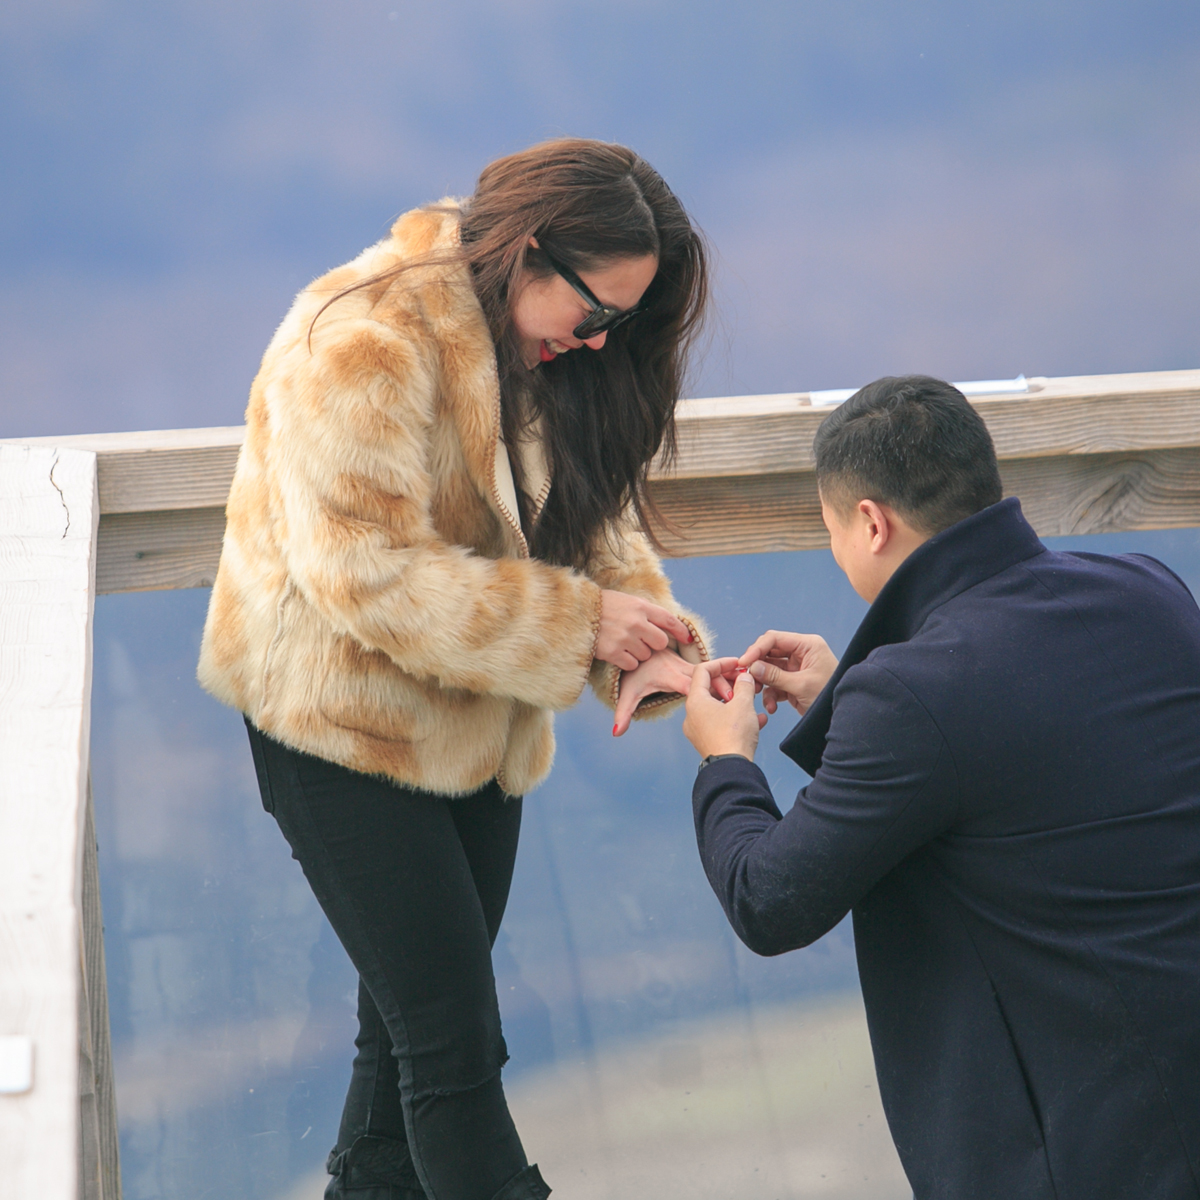 wedding-proposal-sea-to-sky-squamish-he-put-a-ring-on-it.jpg